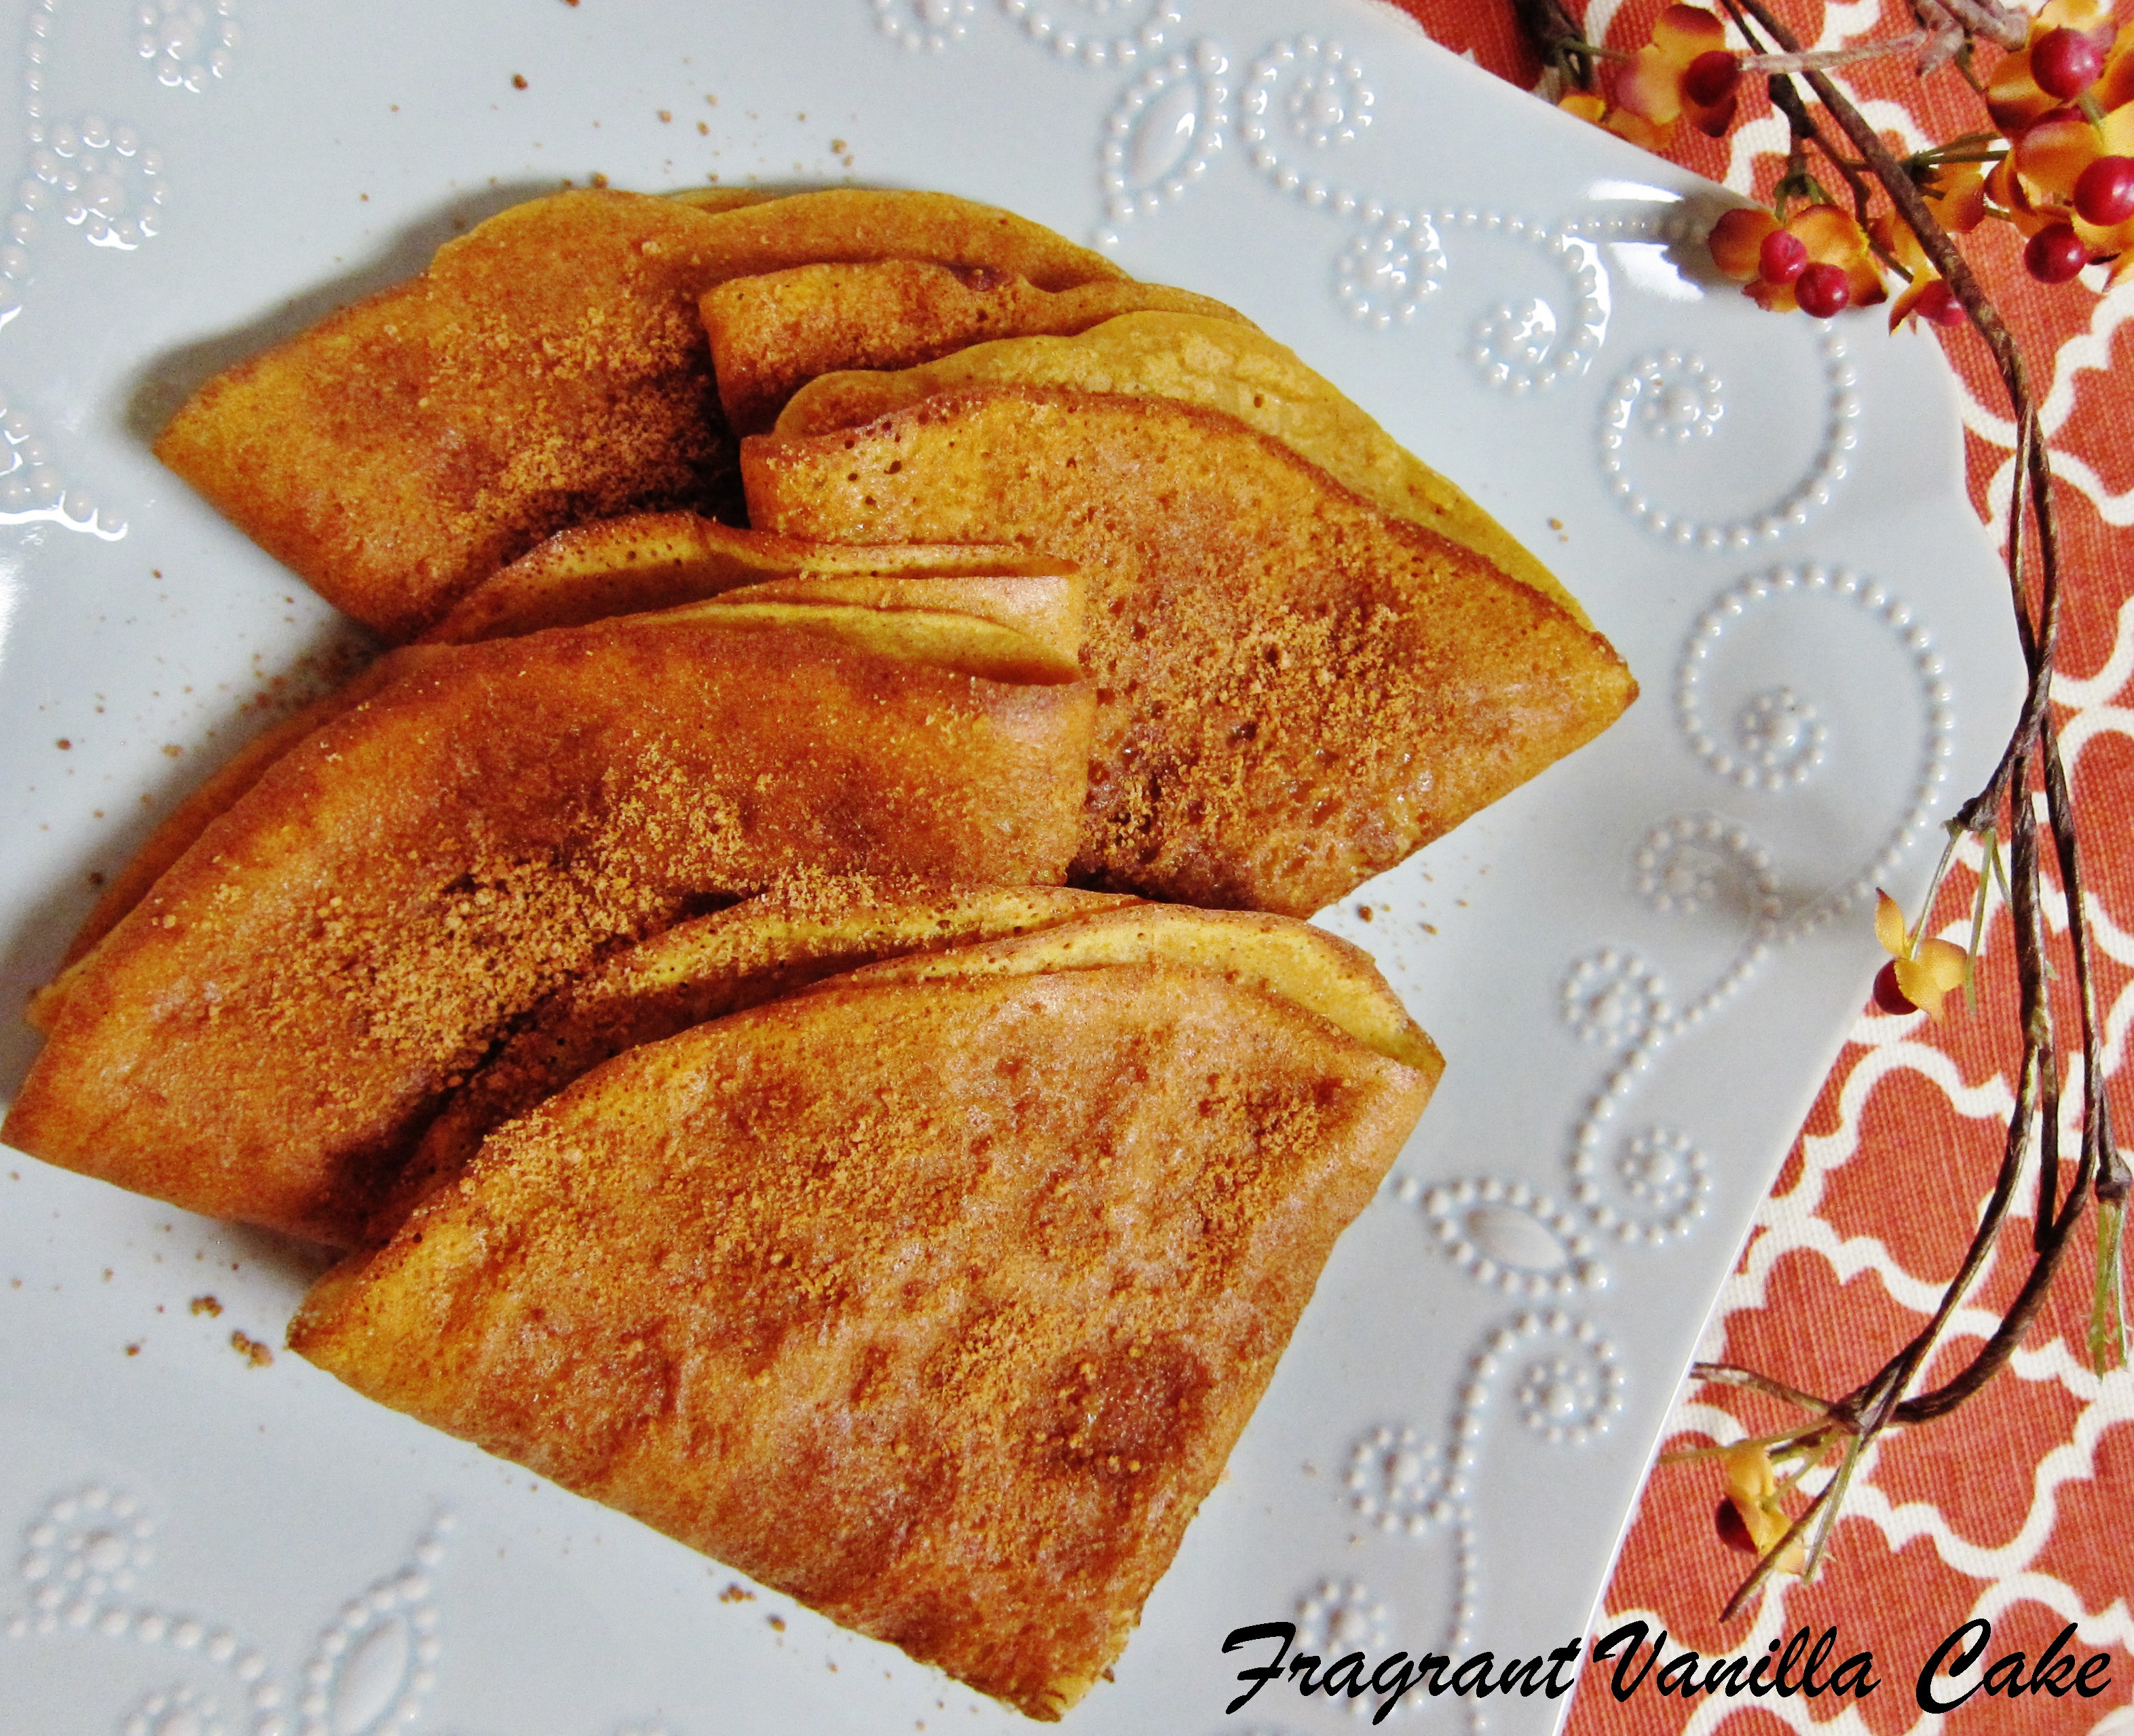 Vegan Pumpkin Spice Crepes